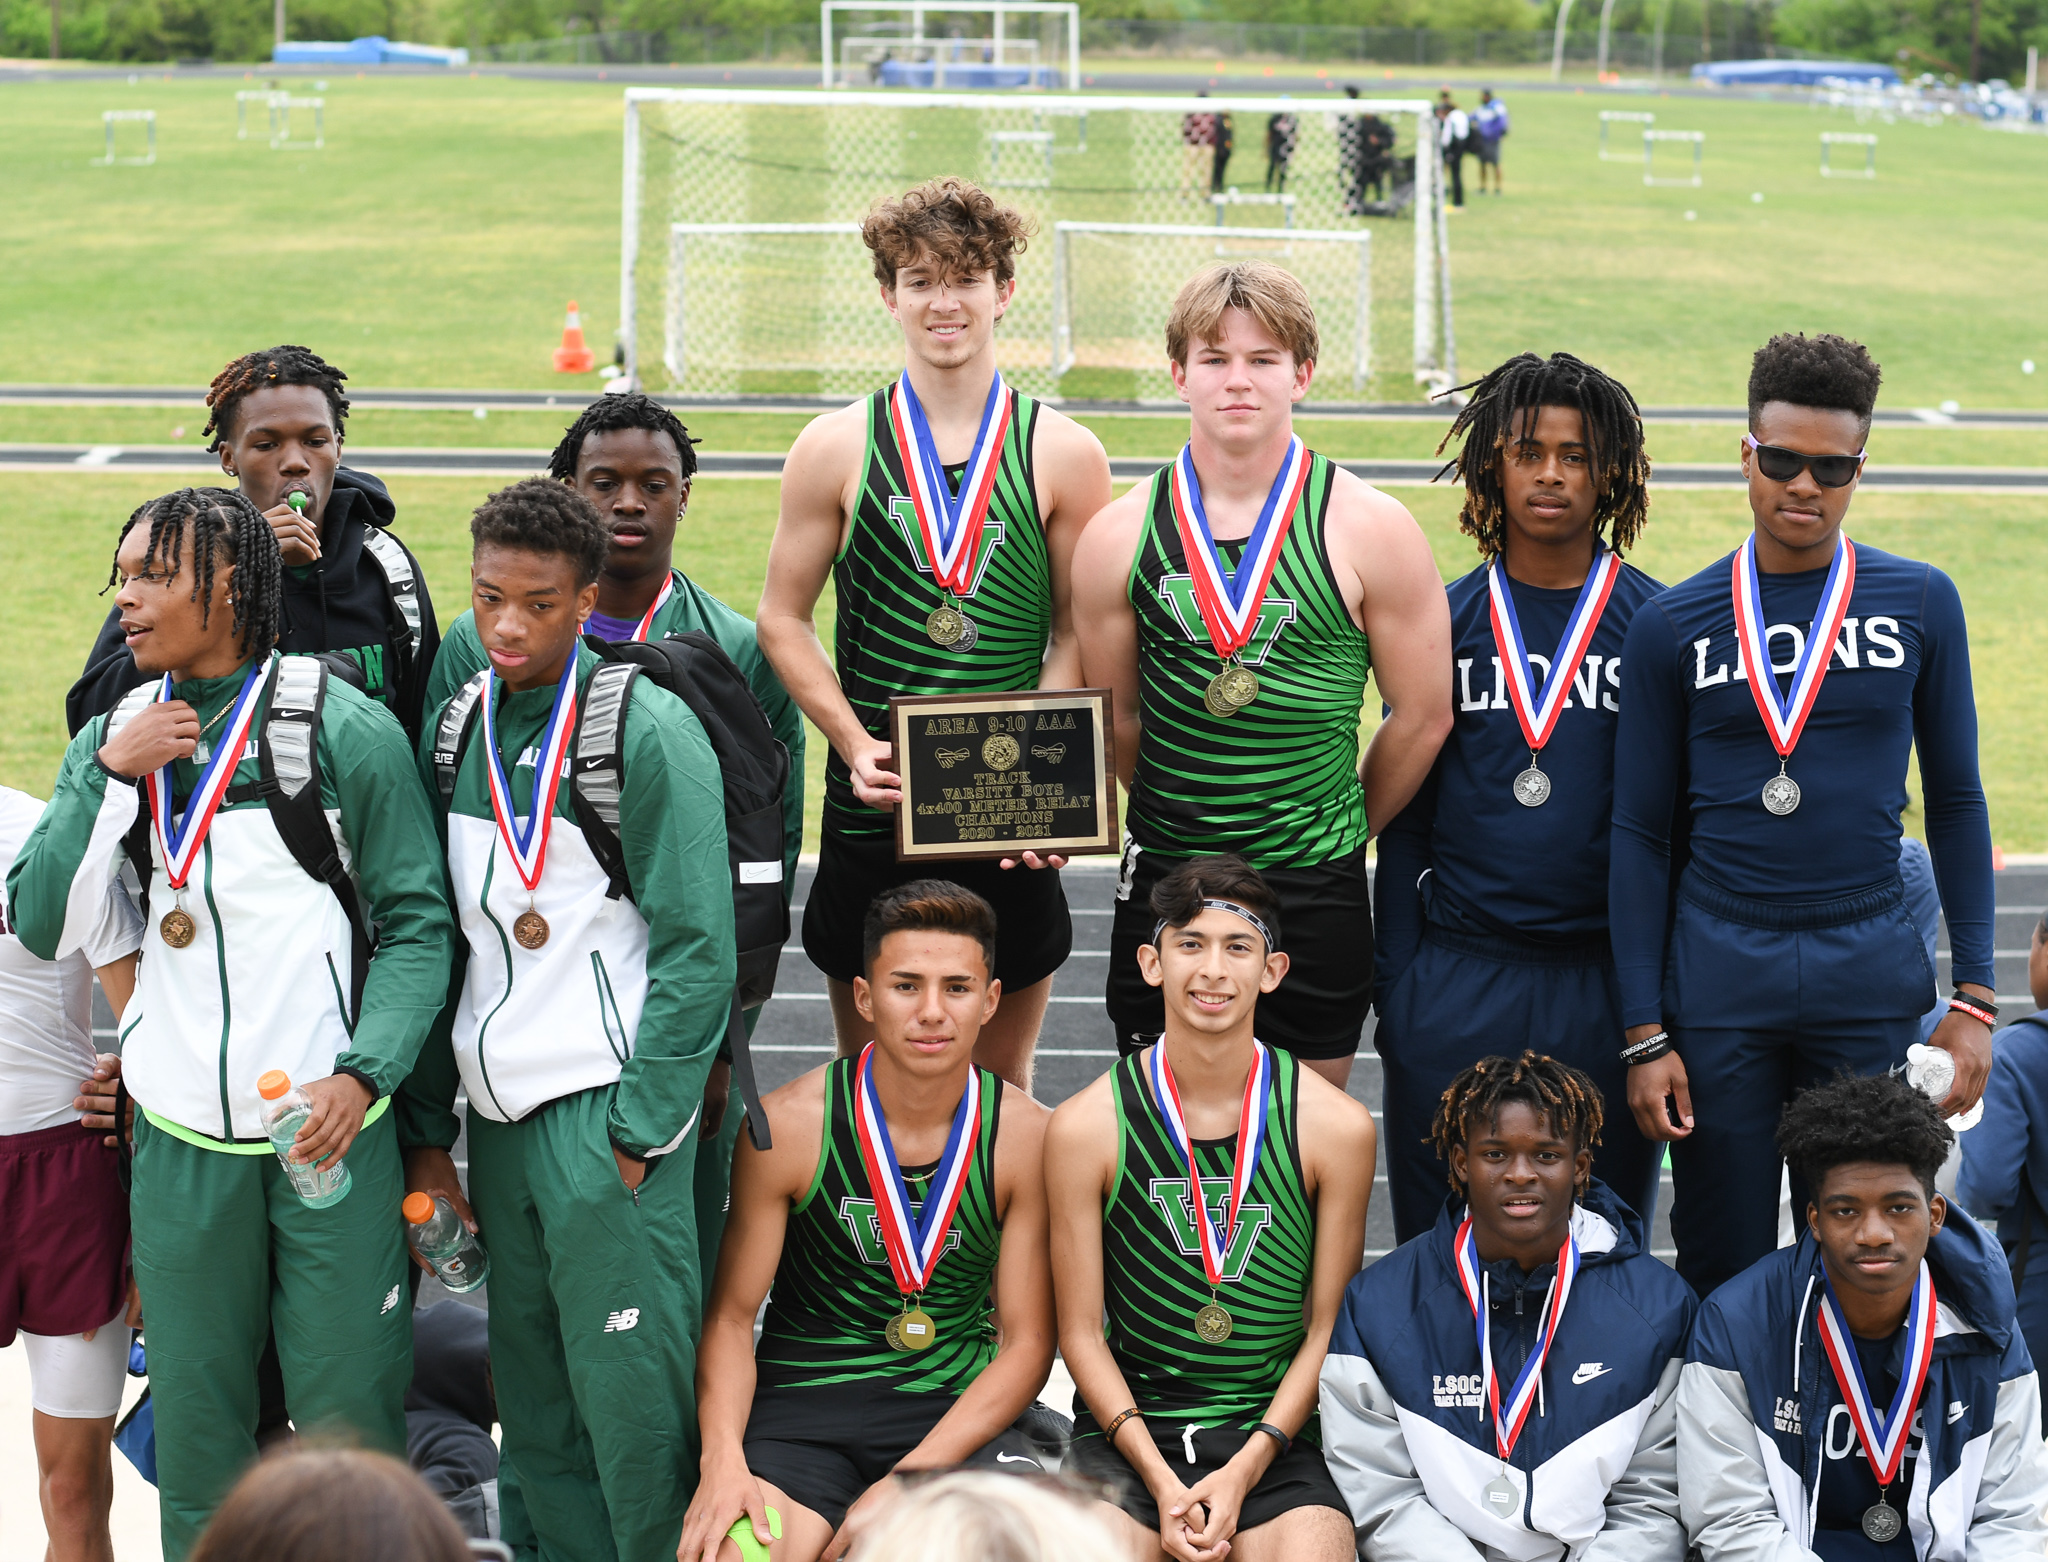 track team at area